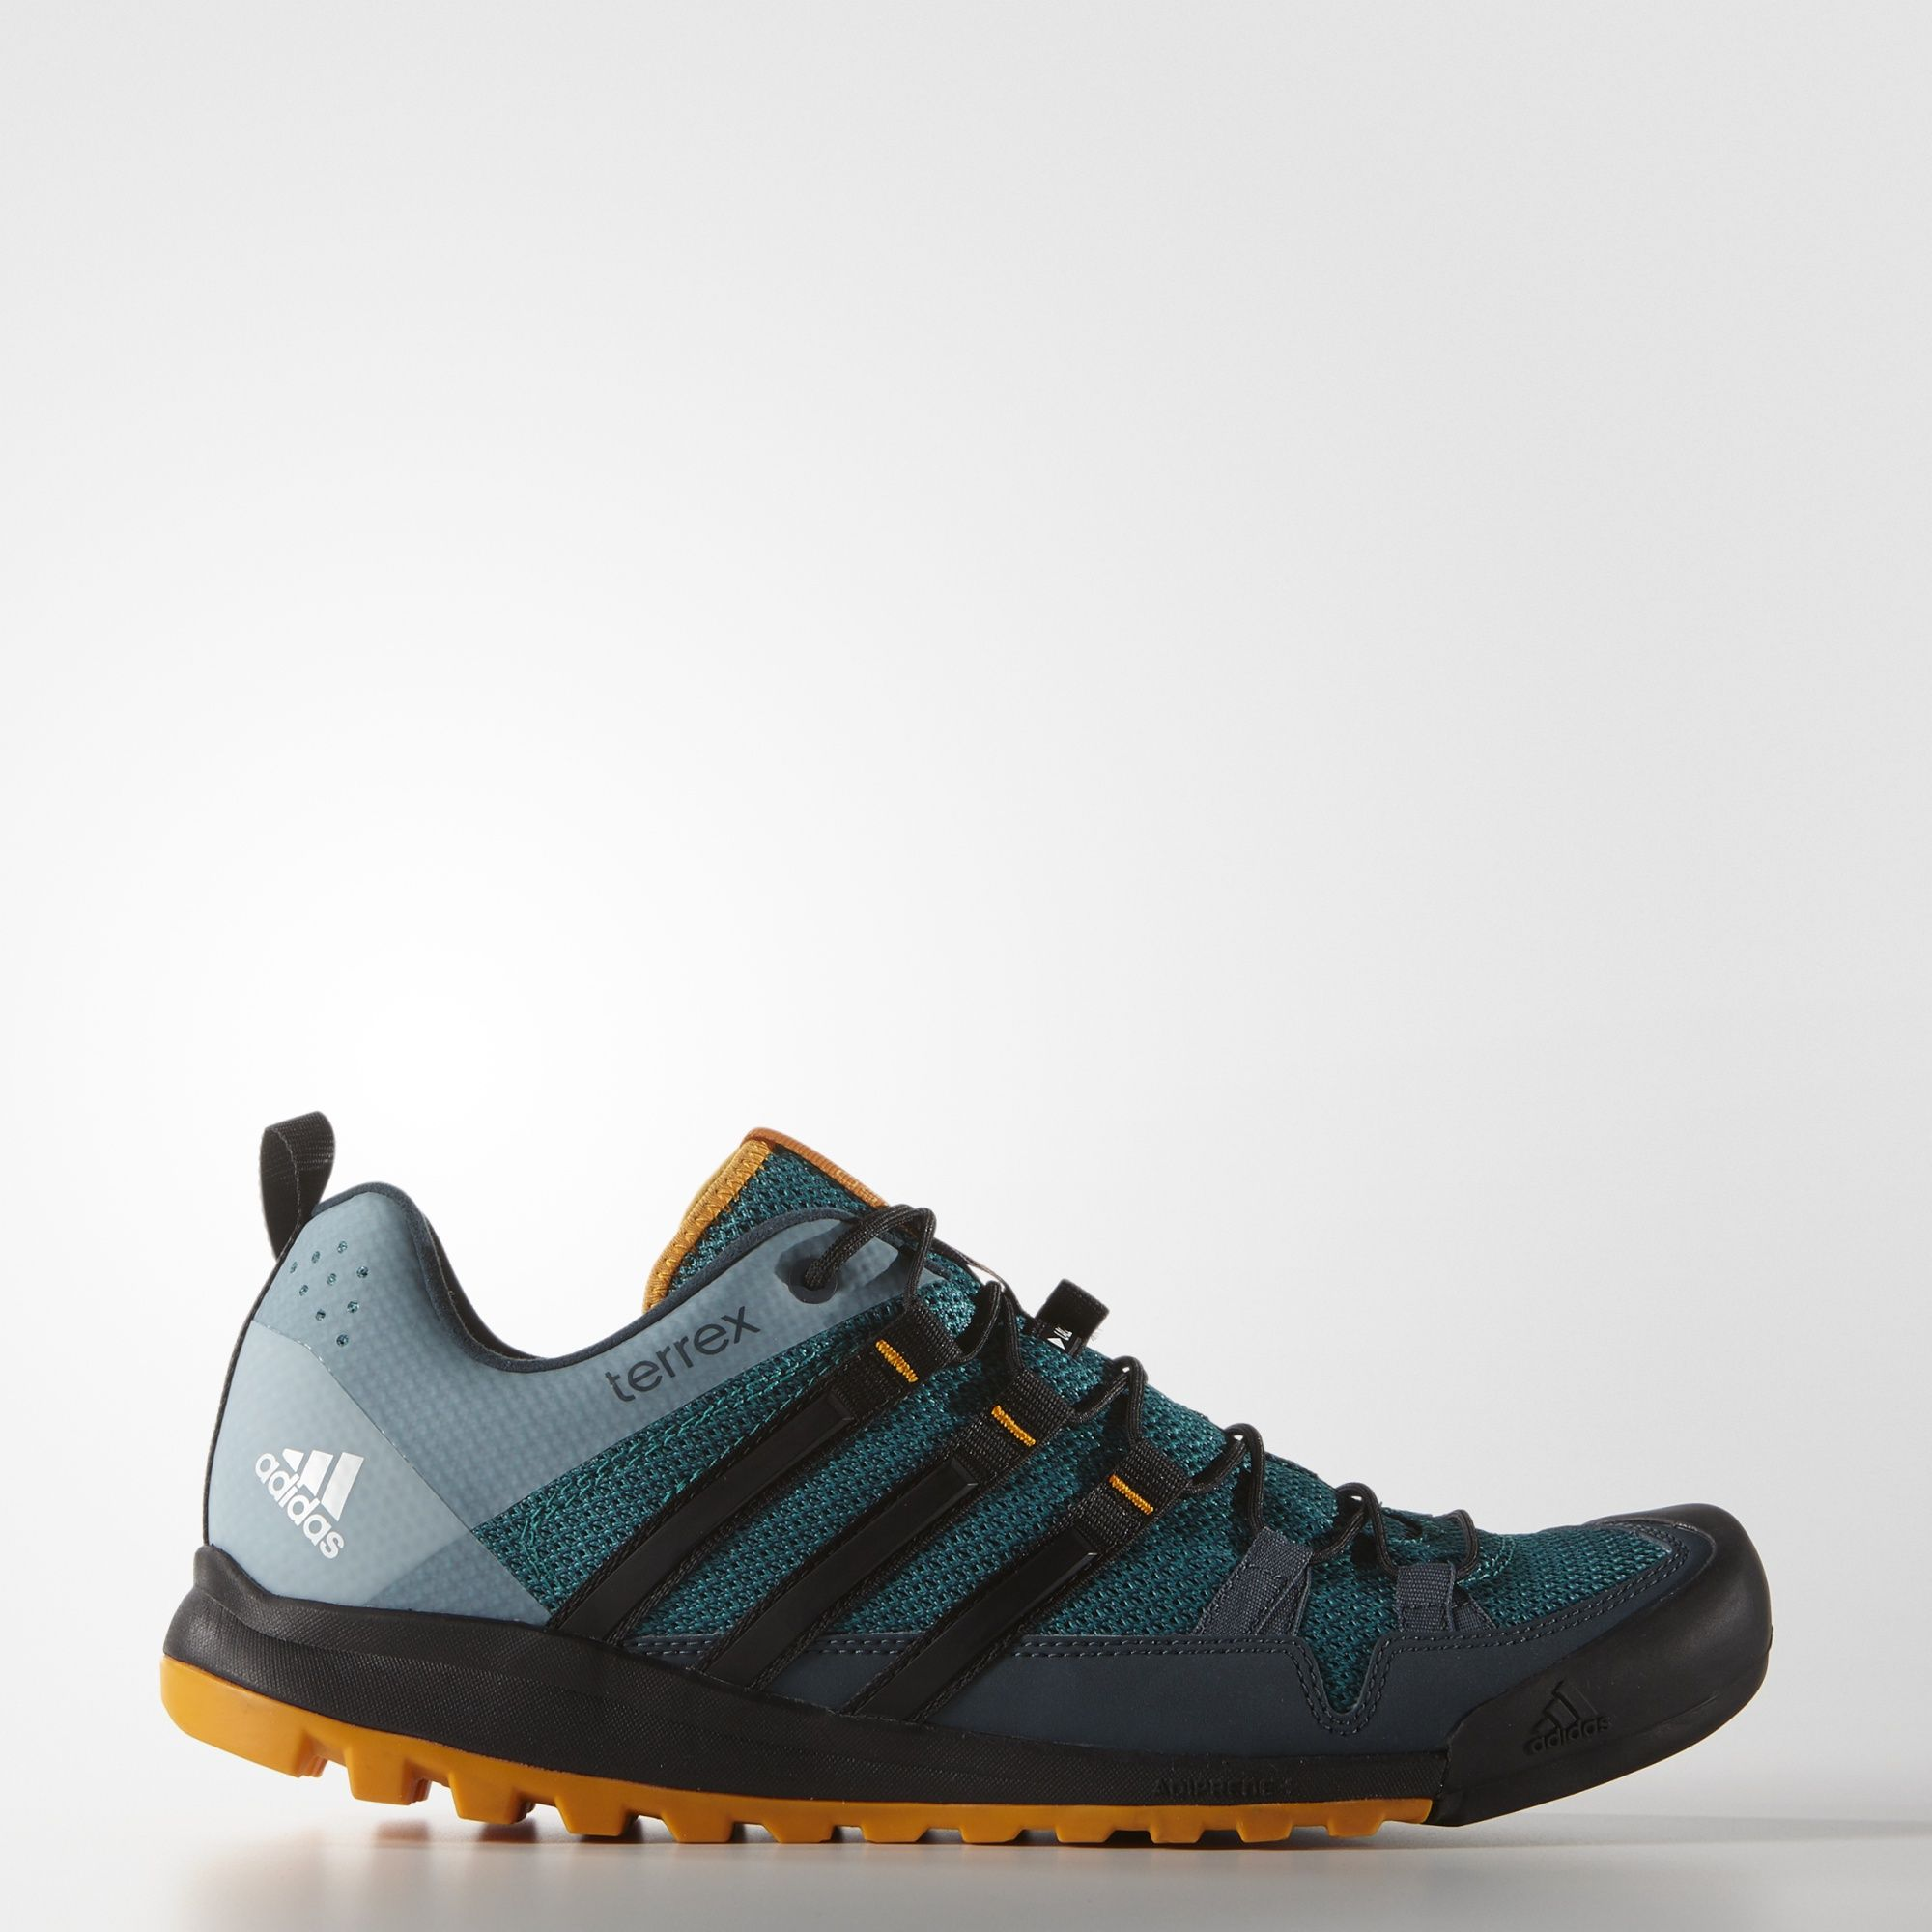 f64ca13221a These men's versatile approach shoes let you run, climb and hike fast,  moving easily between outdoor activities. They're light and flexible, ...